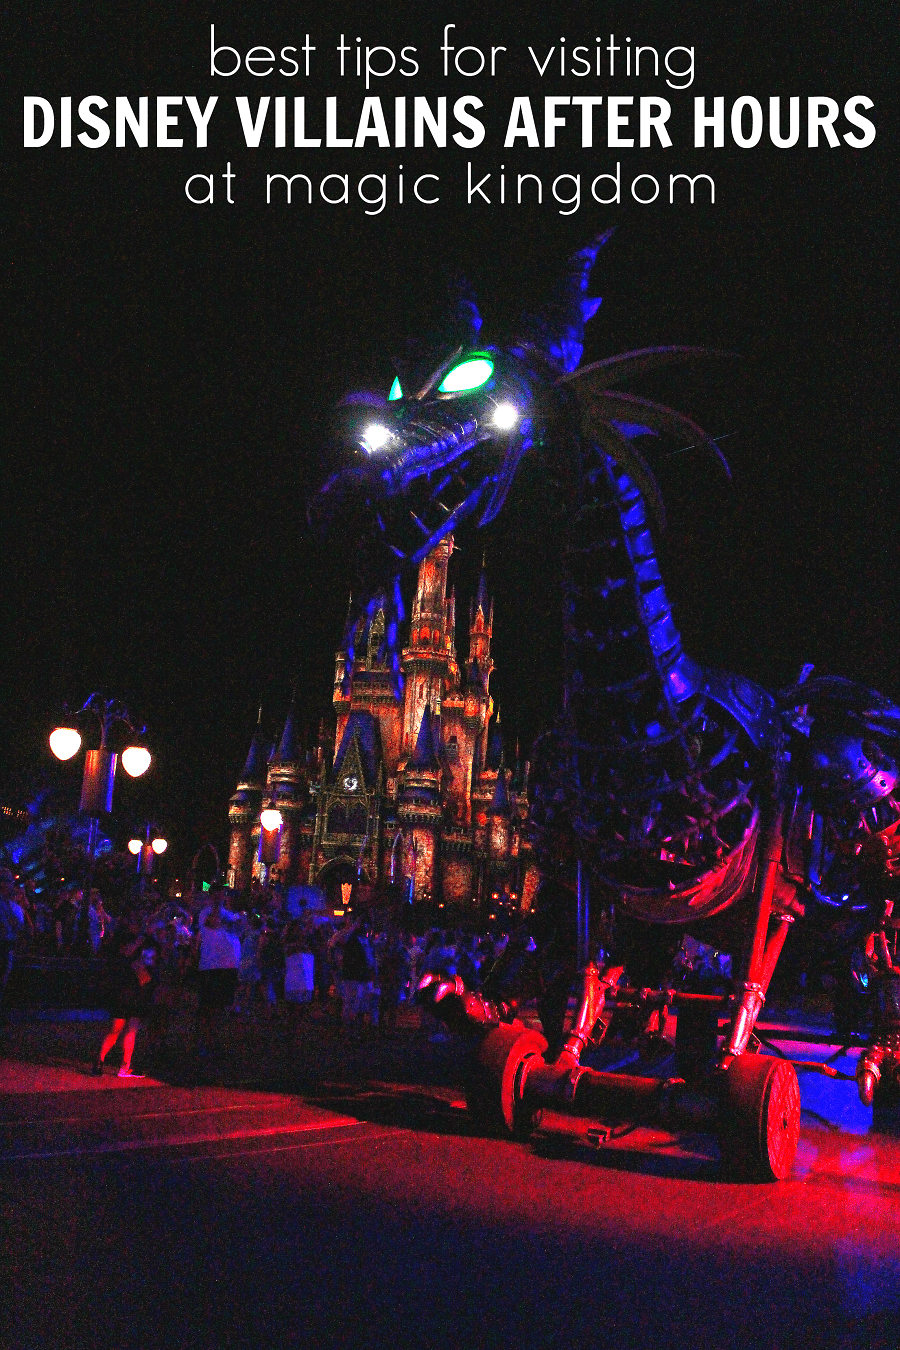 Disney villains after hours guide